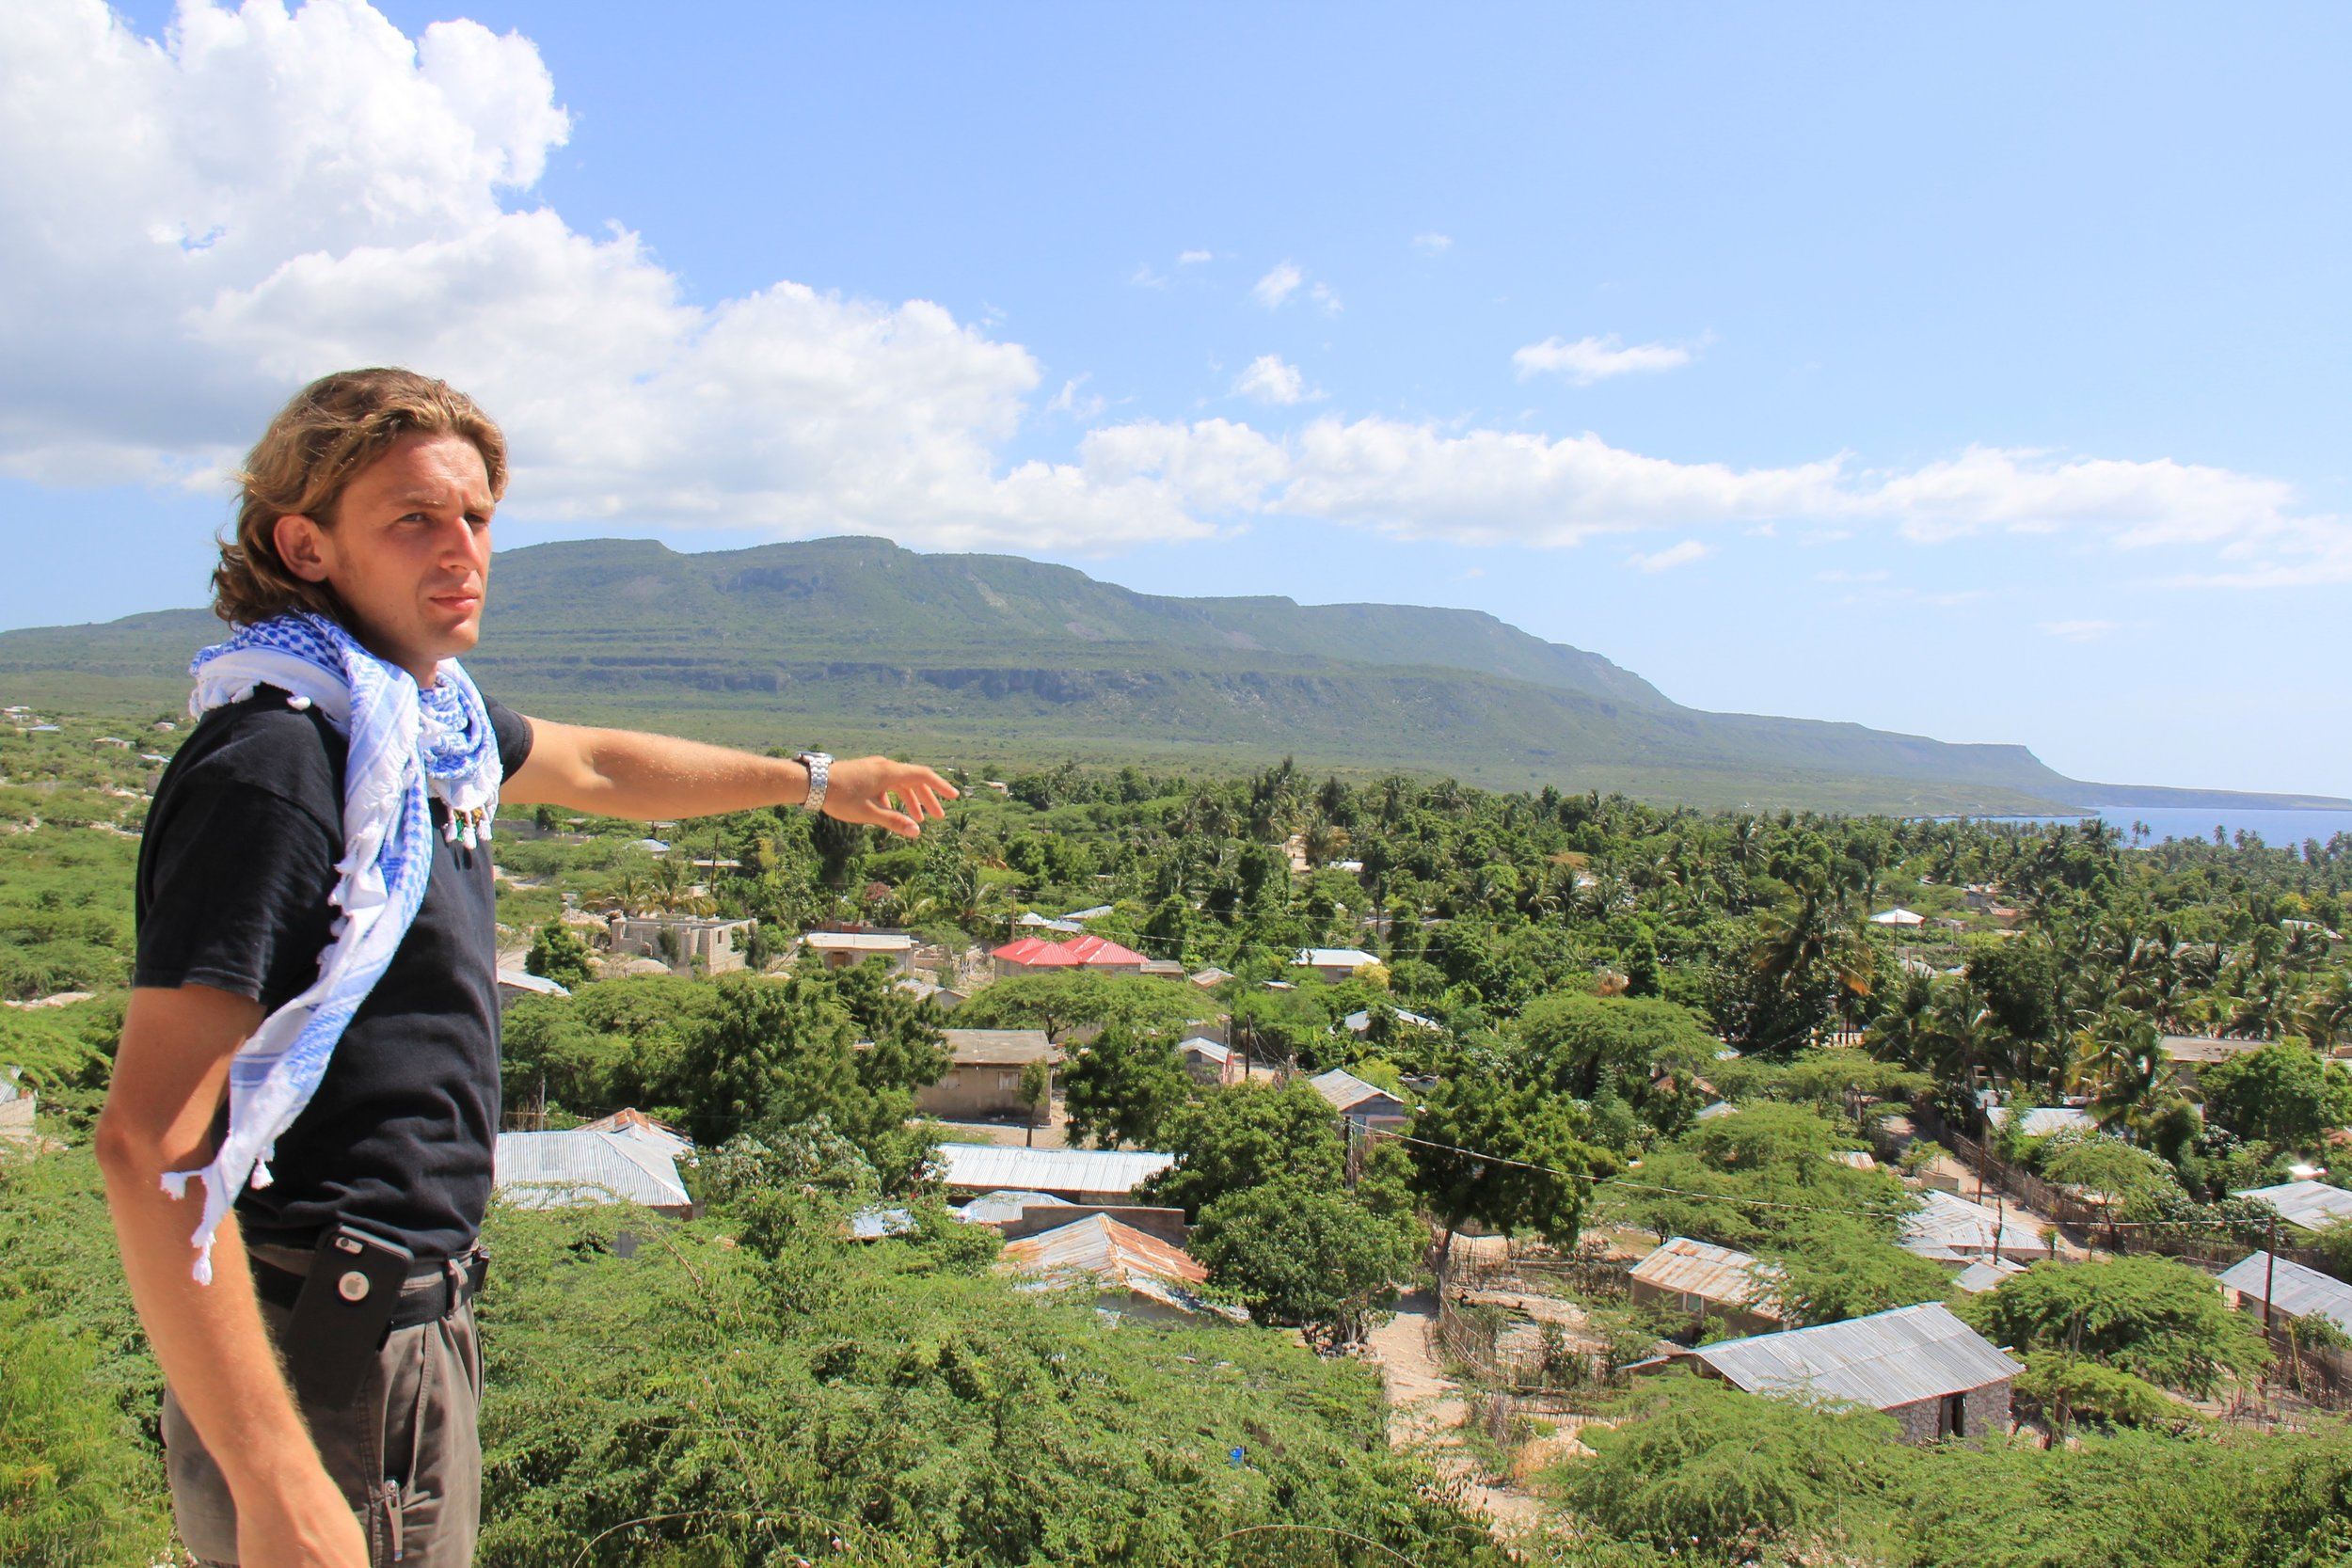 Andy Bindea looks out over the community they are electrifying in Haiti